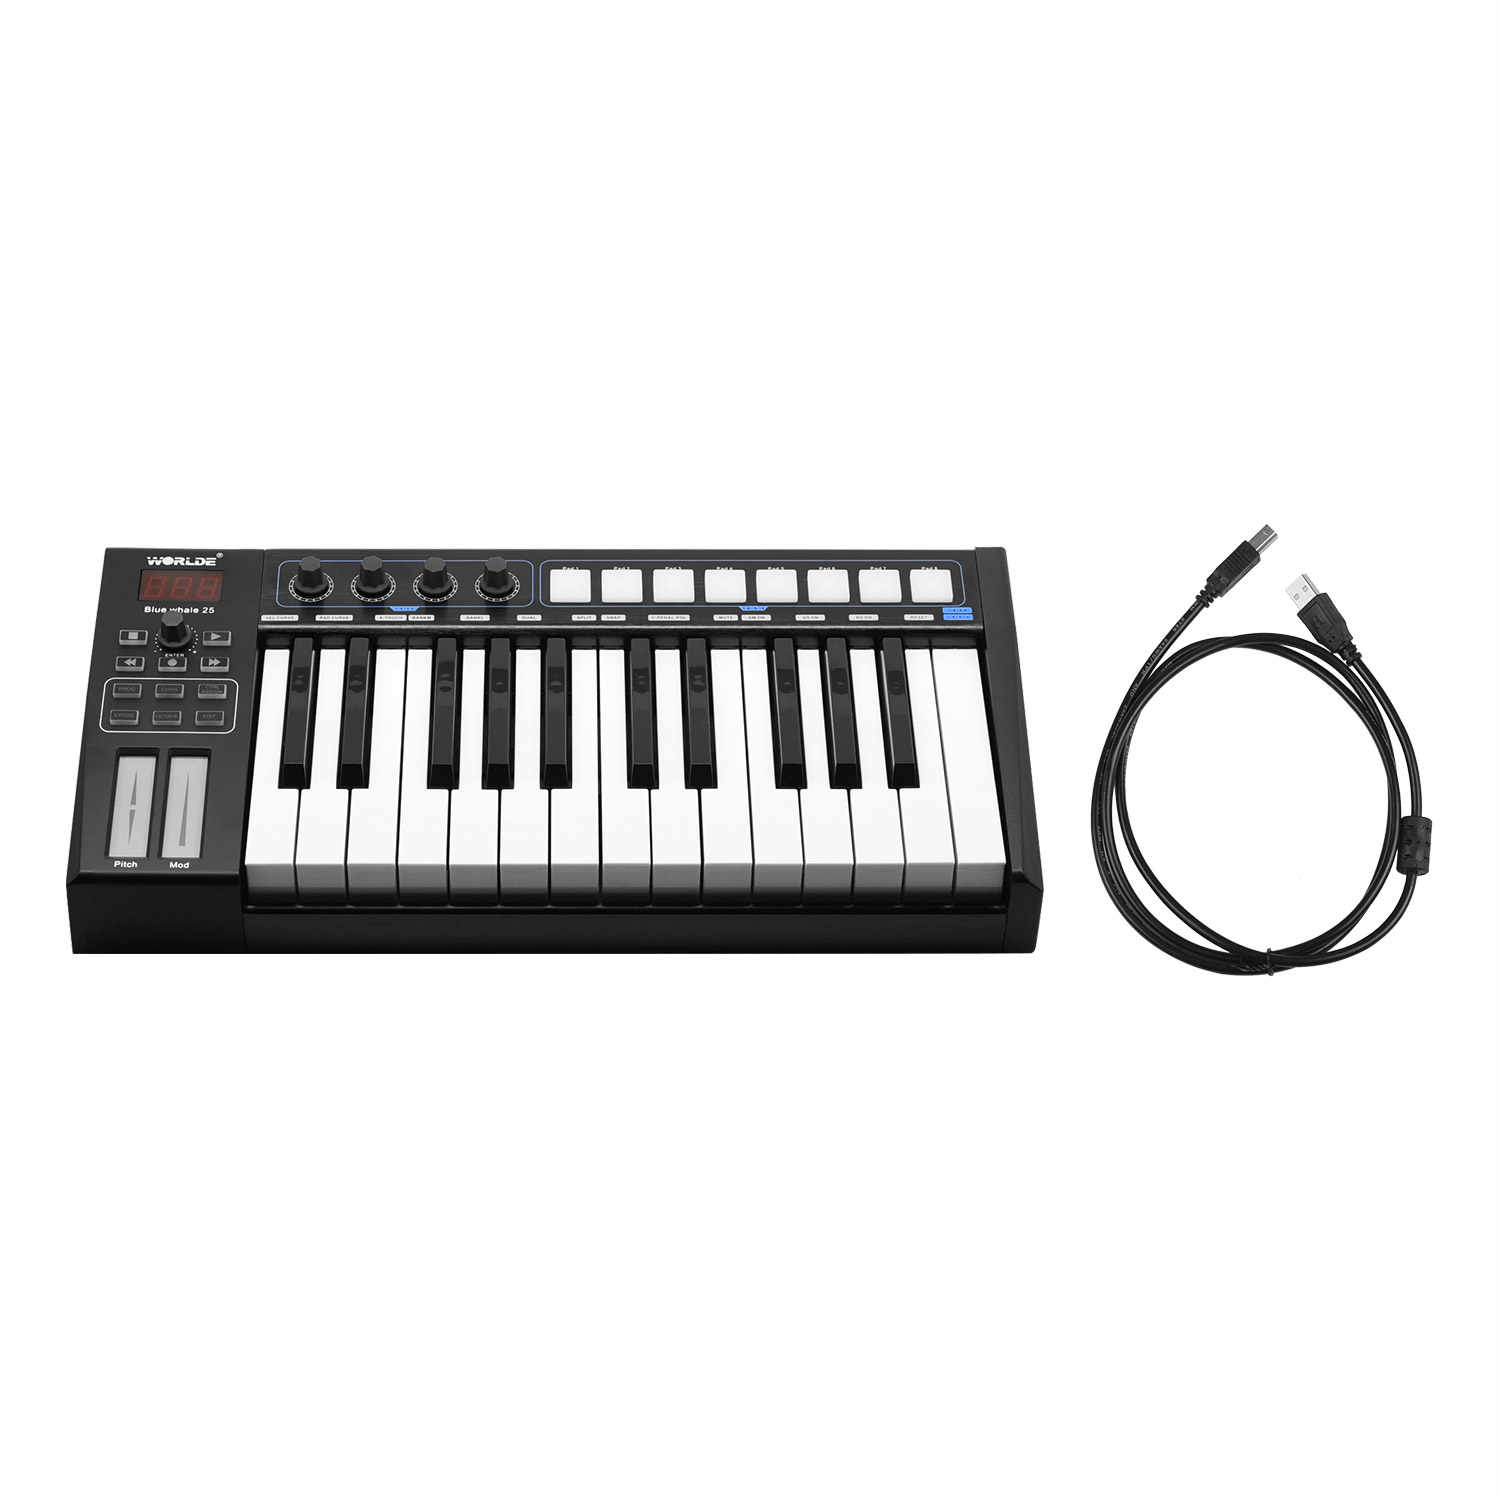 WORLDE Blue whale 25 Portable USB MIDI Controller Keyboard 25 Semi-weighted Keys 8 RGB Backlit Trigger Pads LED Display with USB Cable